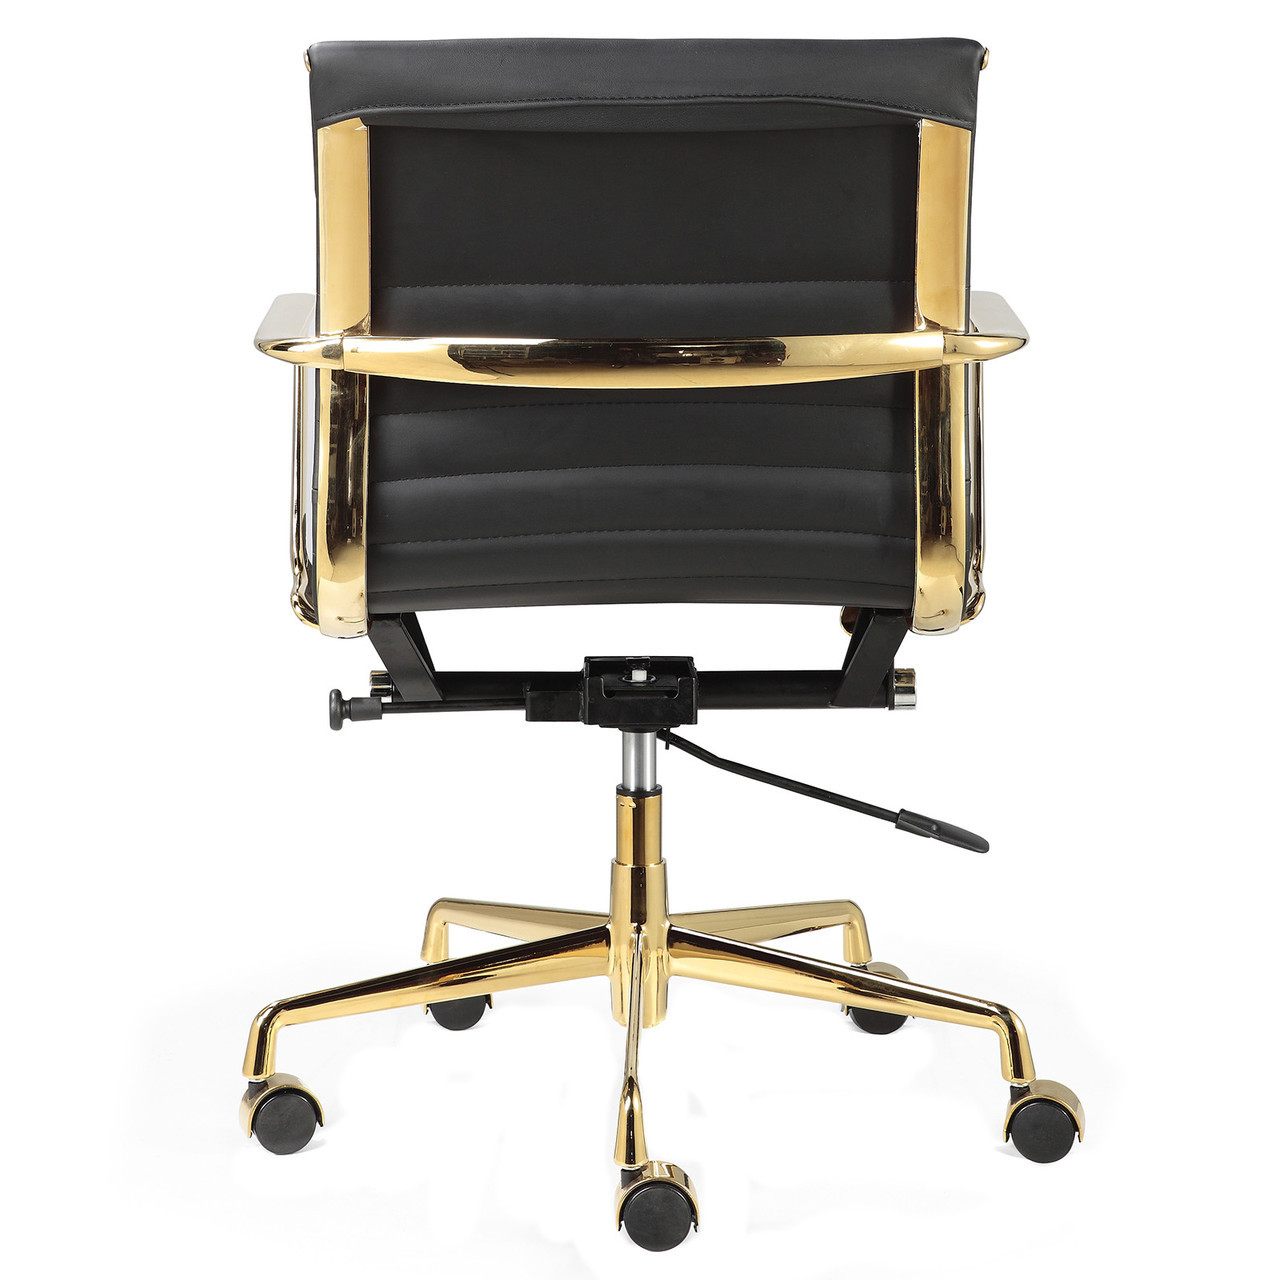 Modern leather office chair -  Contemporary Office Chairs M346 Gold And Black Leather Office Chairs